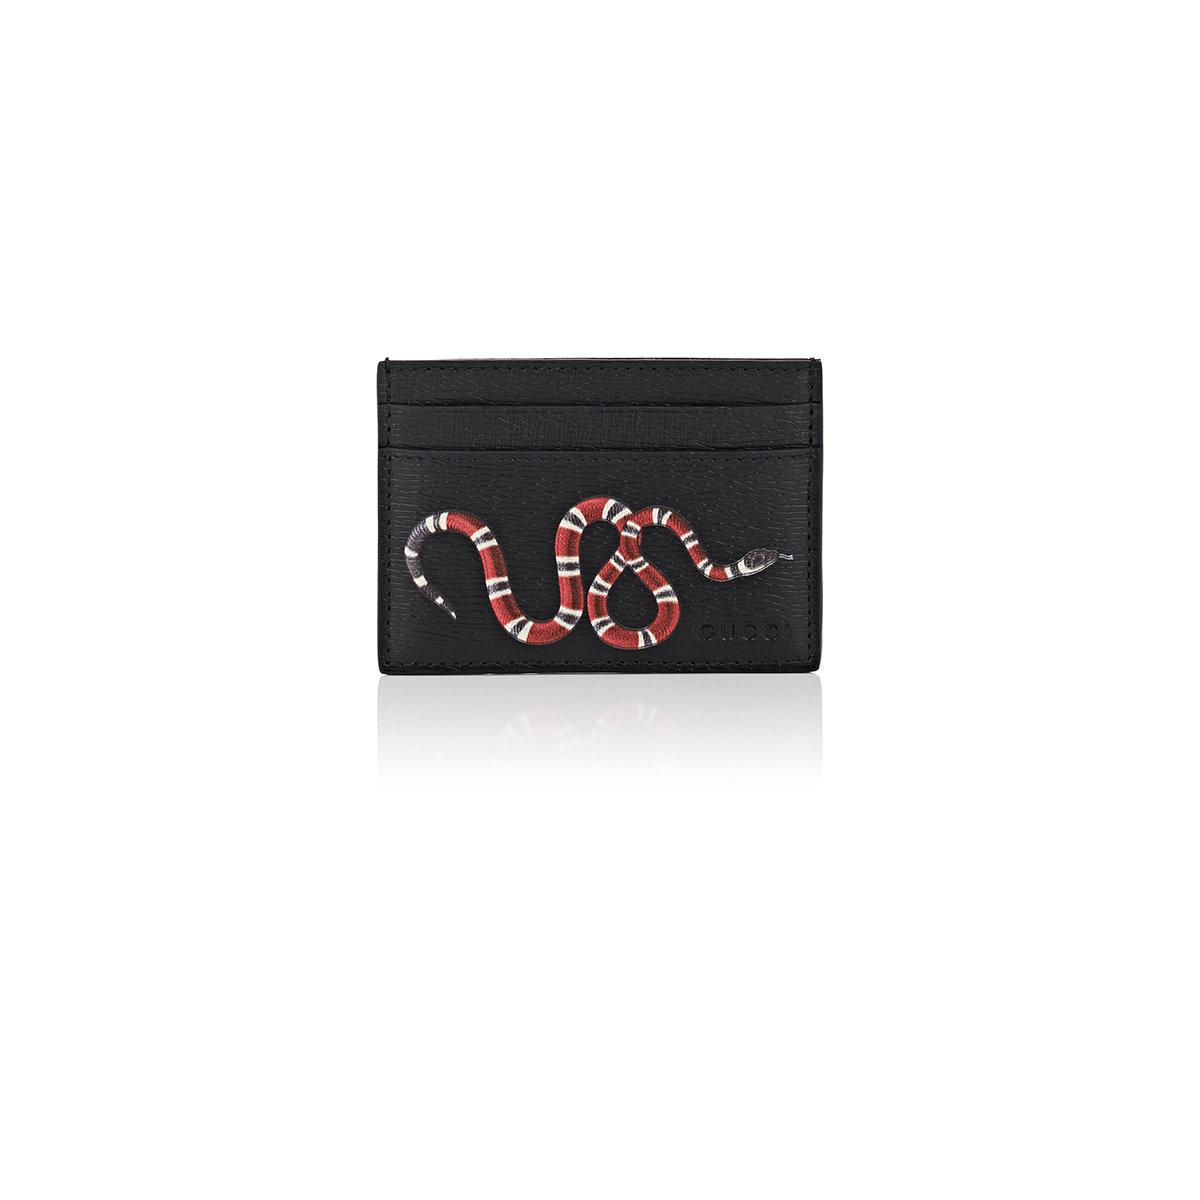 de4deba71ece Gucci Kingsnake Card Case in Black for Men - Lyst